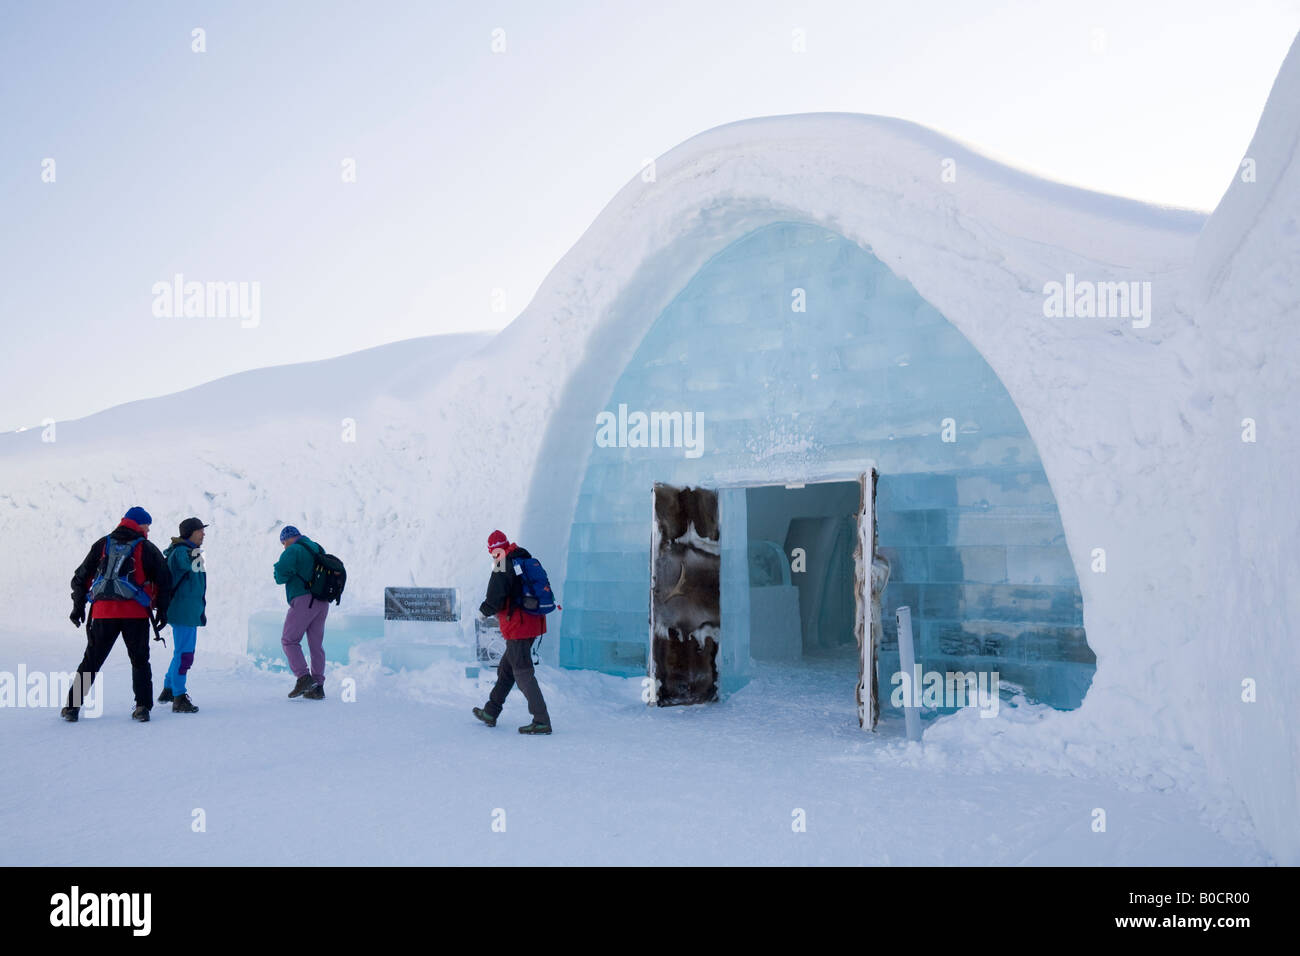 Visitors in front of the Jukkasjarvi icehotel in northern Sweden - Stock Image